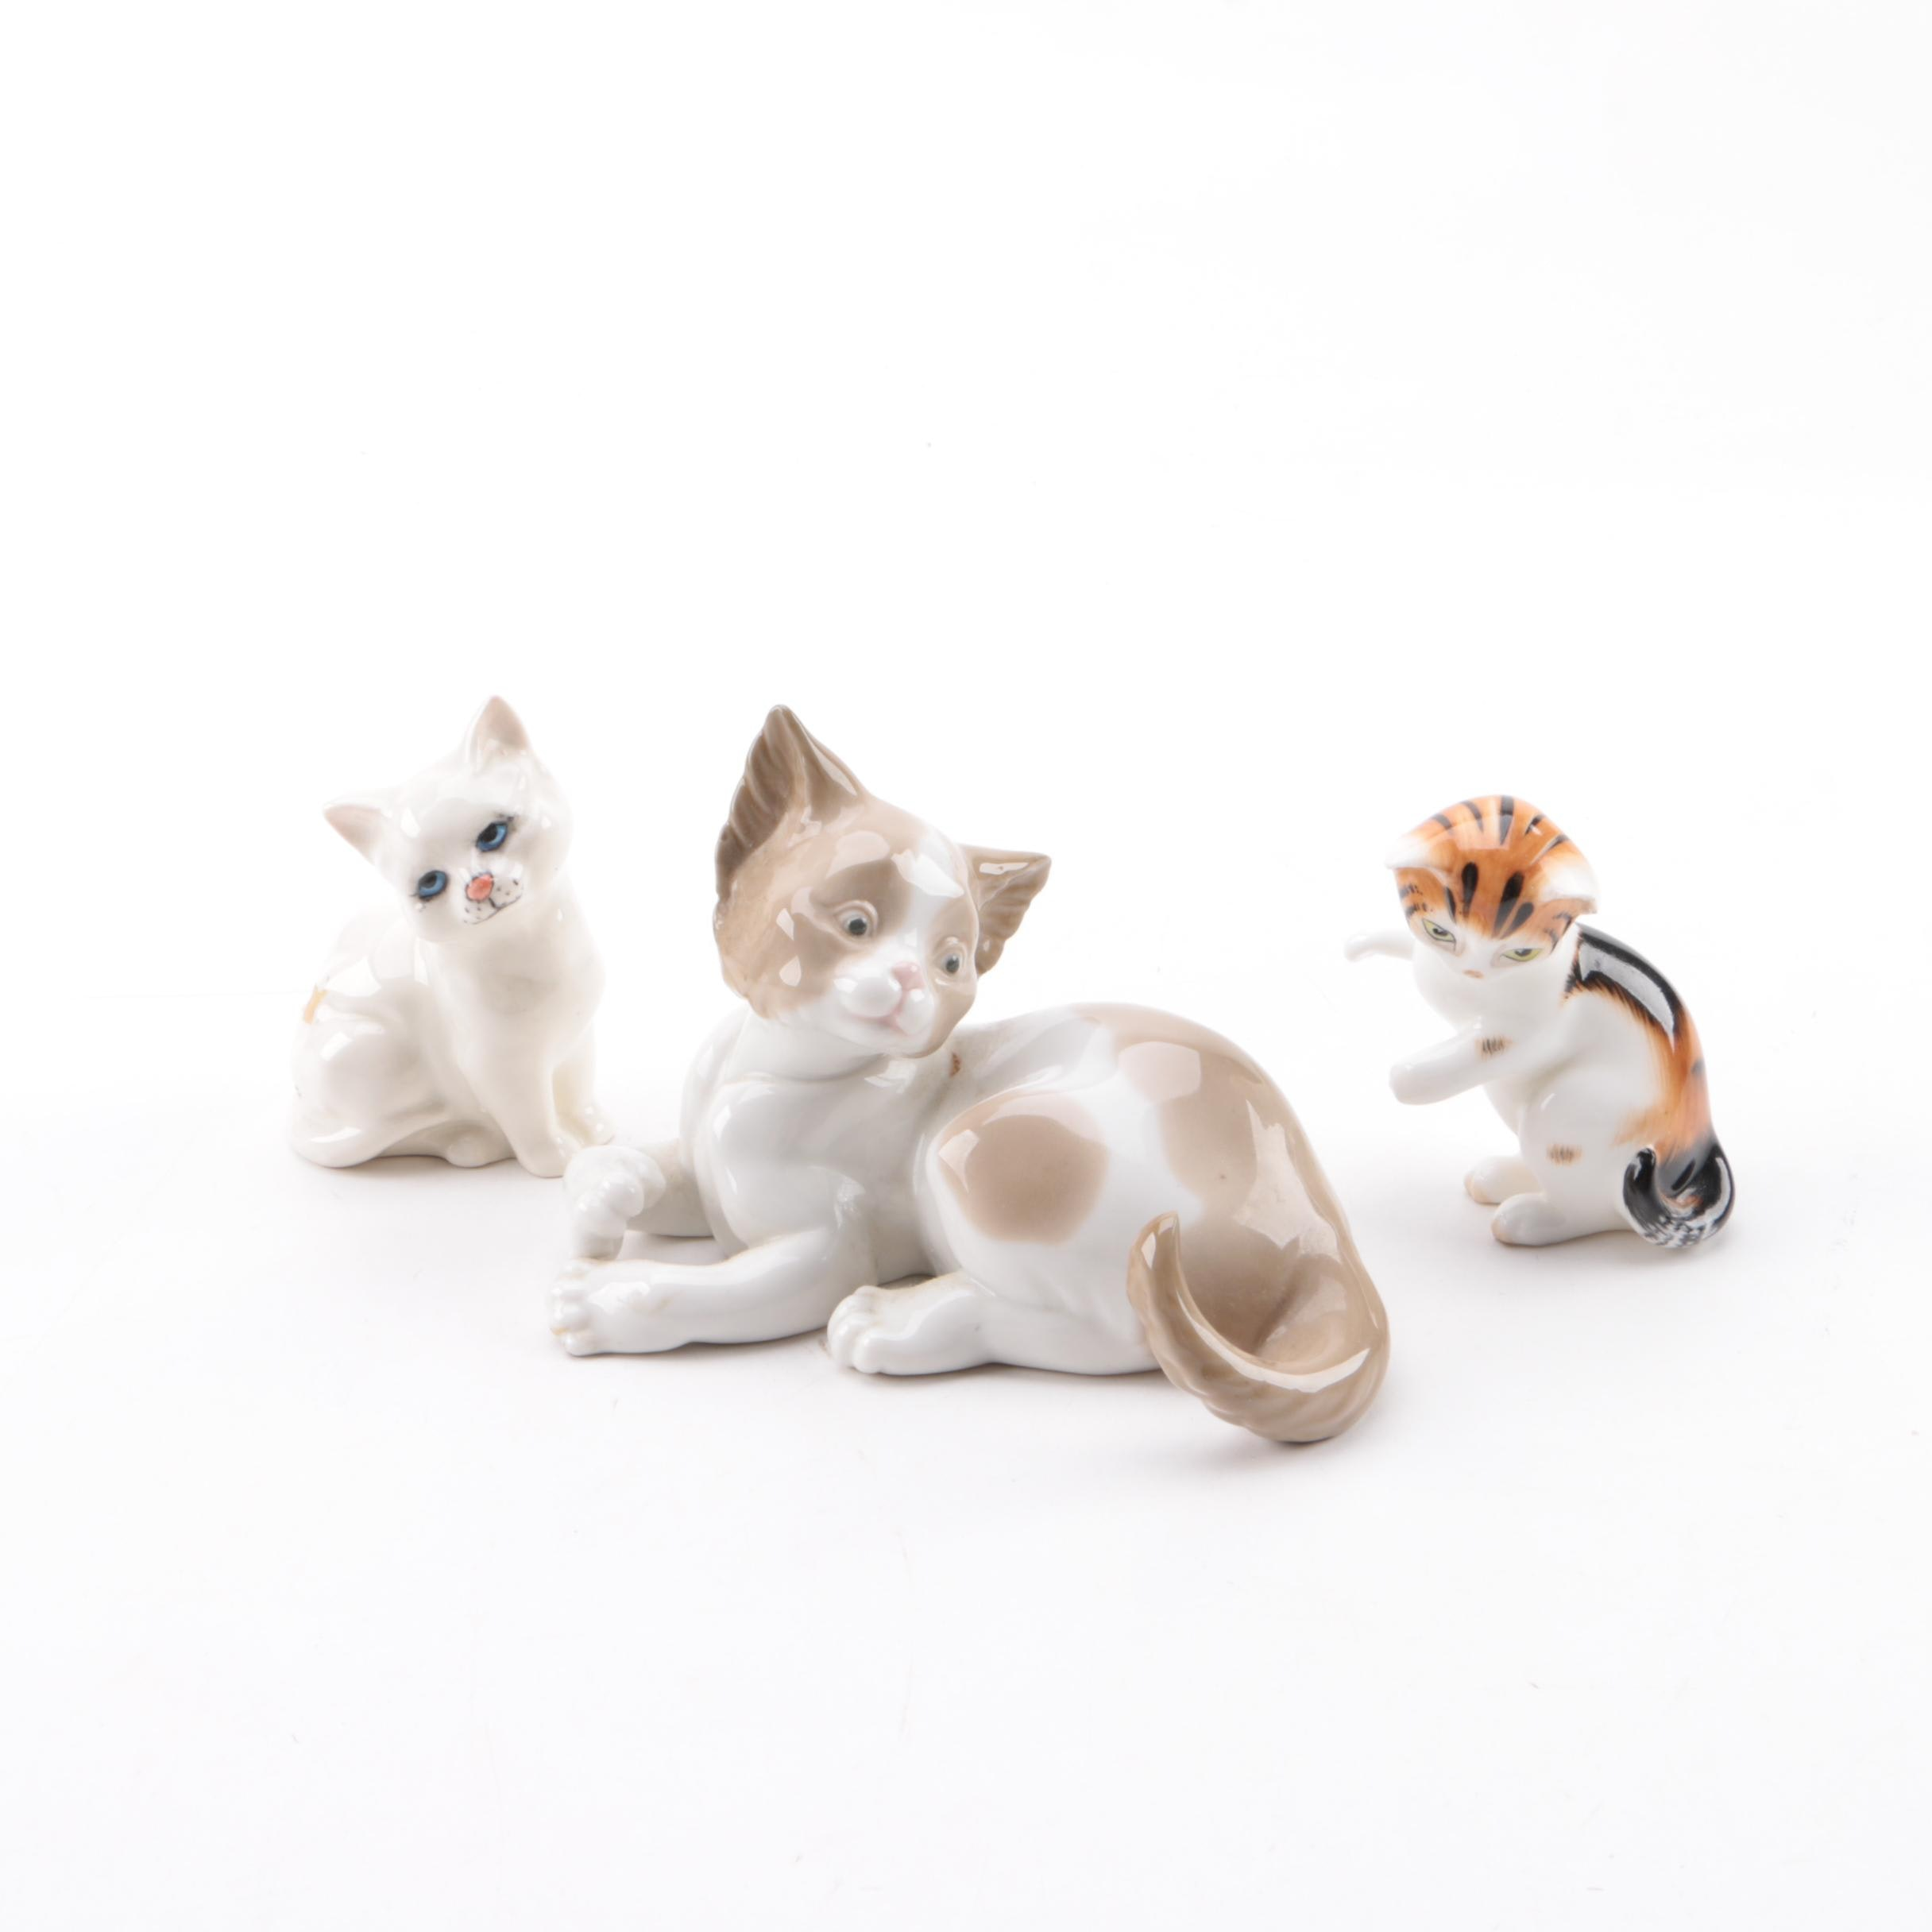 Vintage Porcelain Cat Figurines Including Lladró